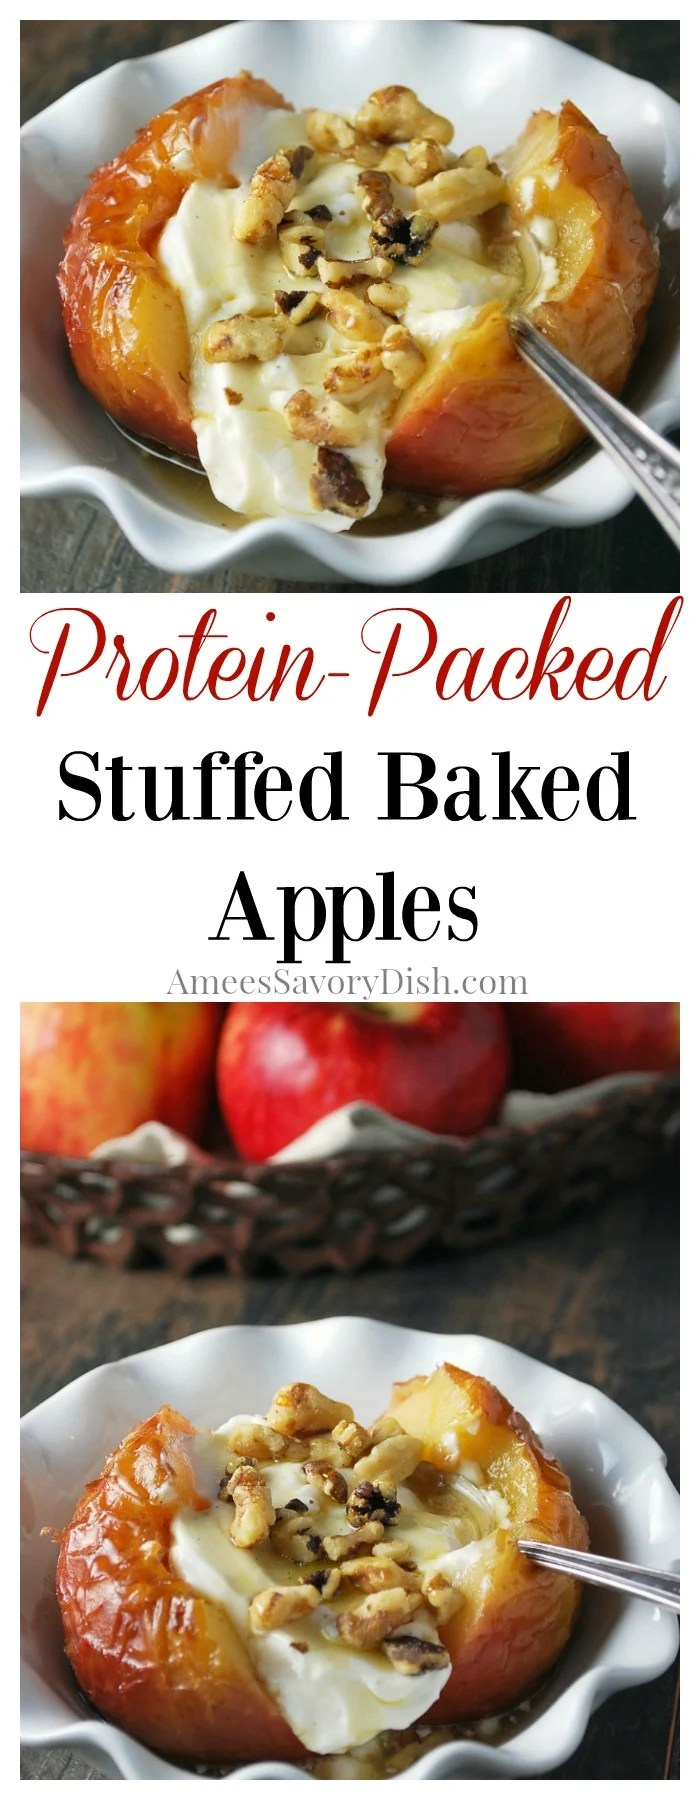 Protein Packed Stuffed Baked Apples recipe